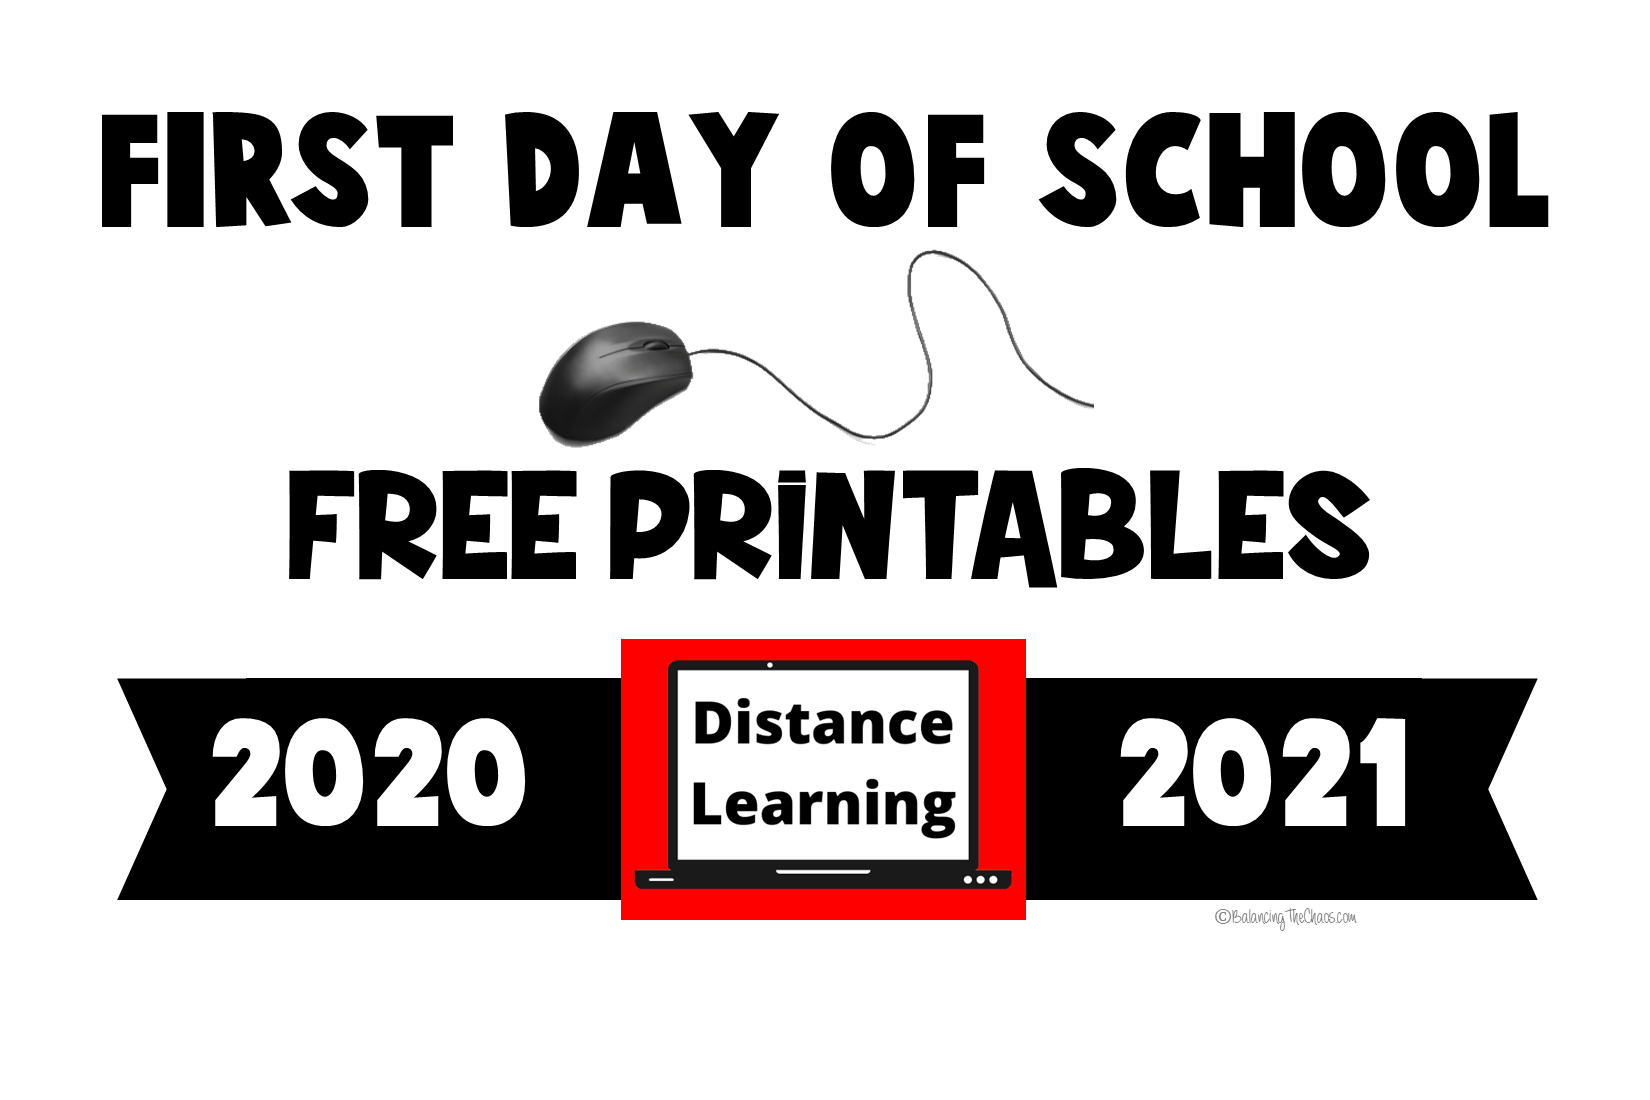 First day of school distance learning